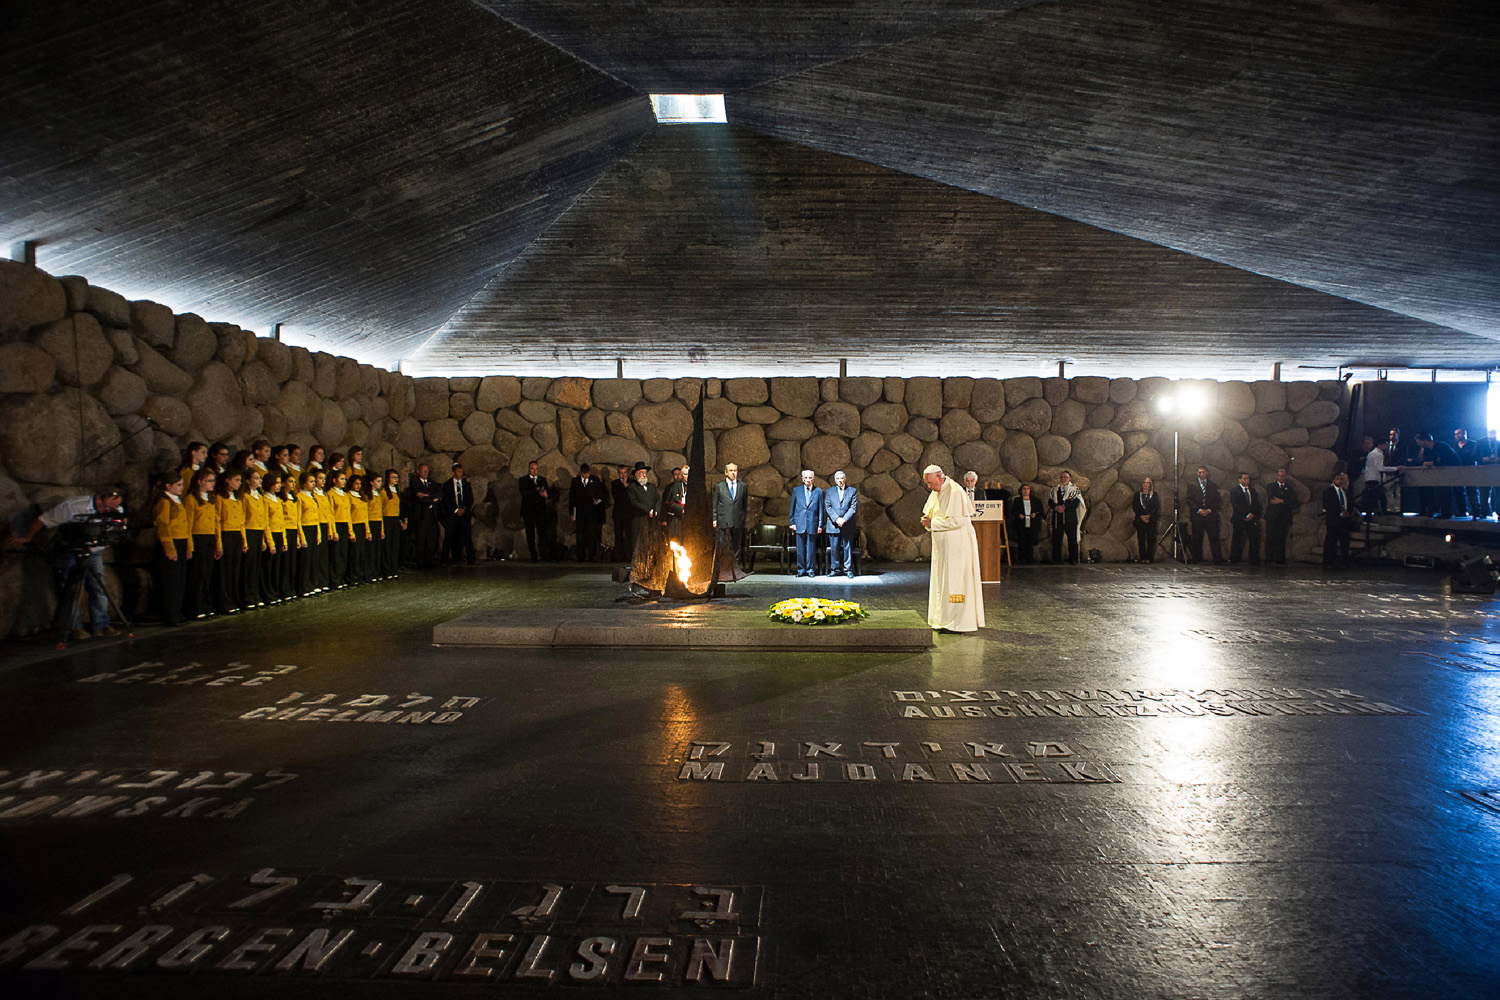 May 26, 2014.  Pope Francis lays a wreath at the Hall of Remembrance at the Yad Vashem Holocaust memorial in Jerusalem.